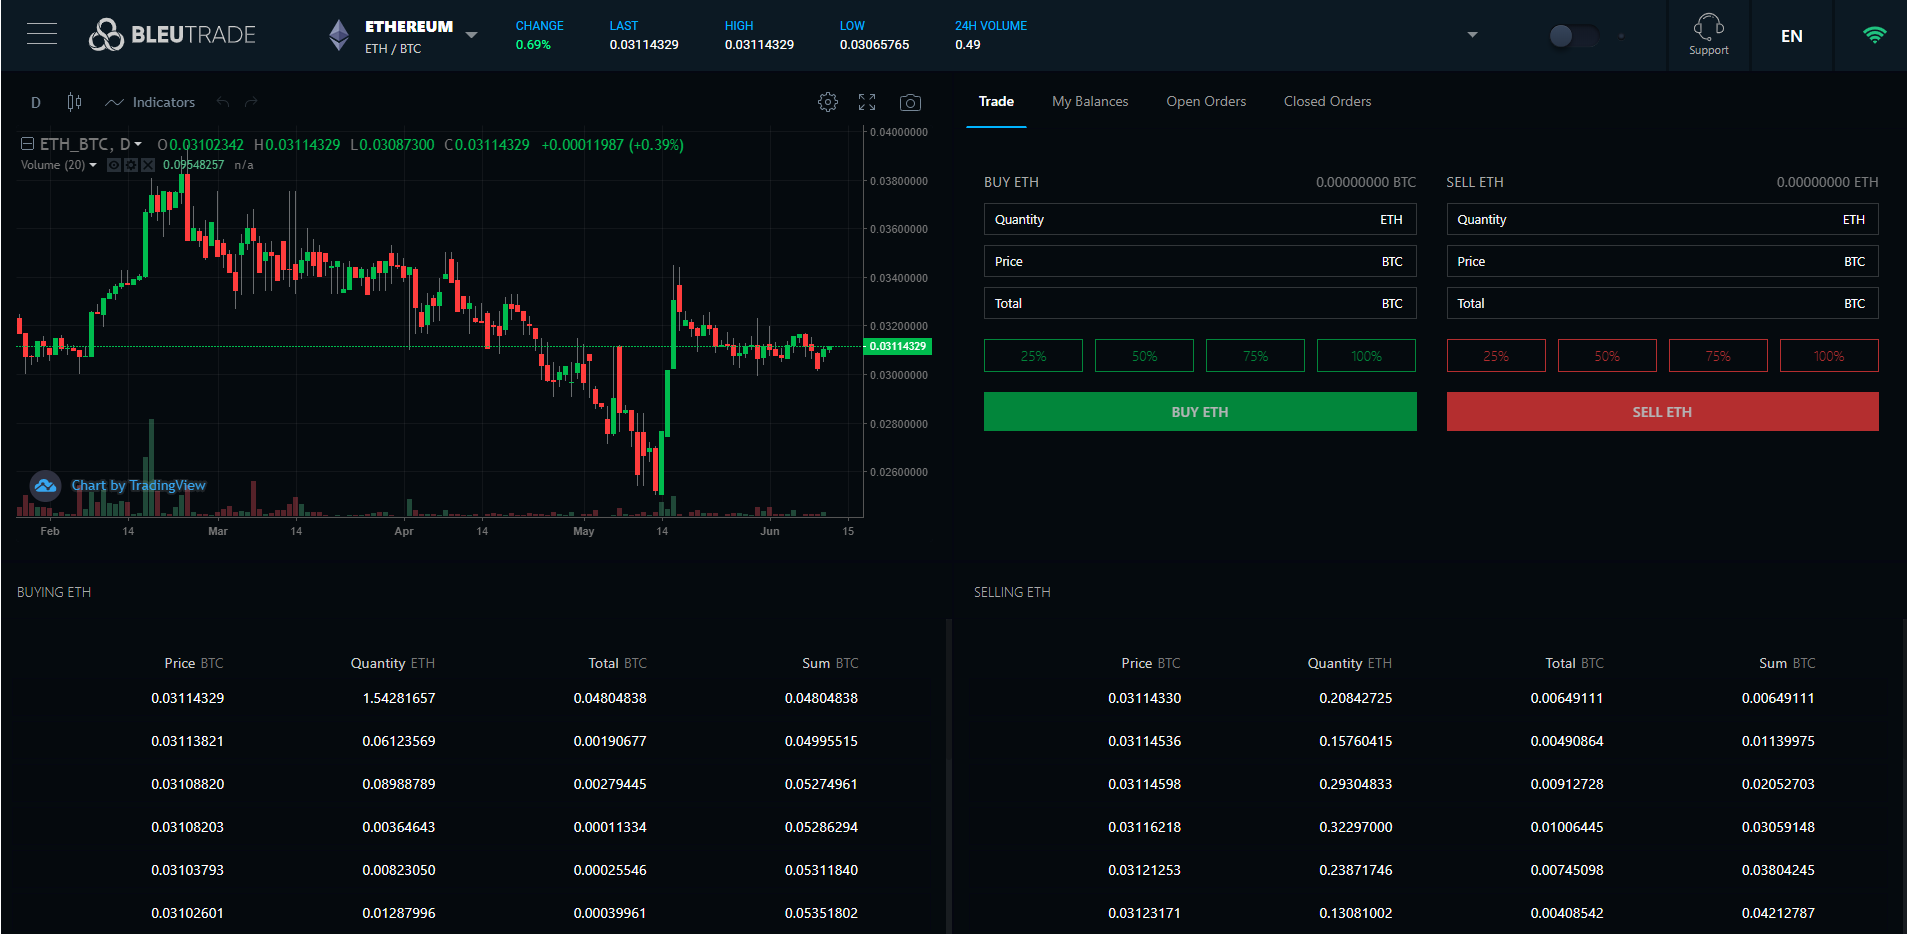 Bleutrade Trading View Basic